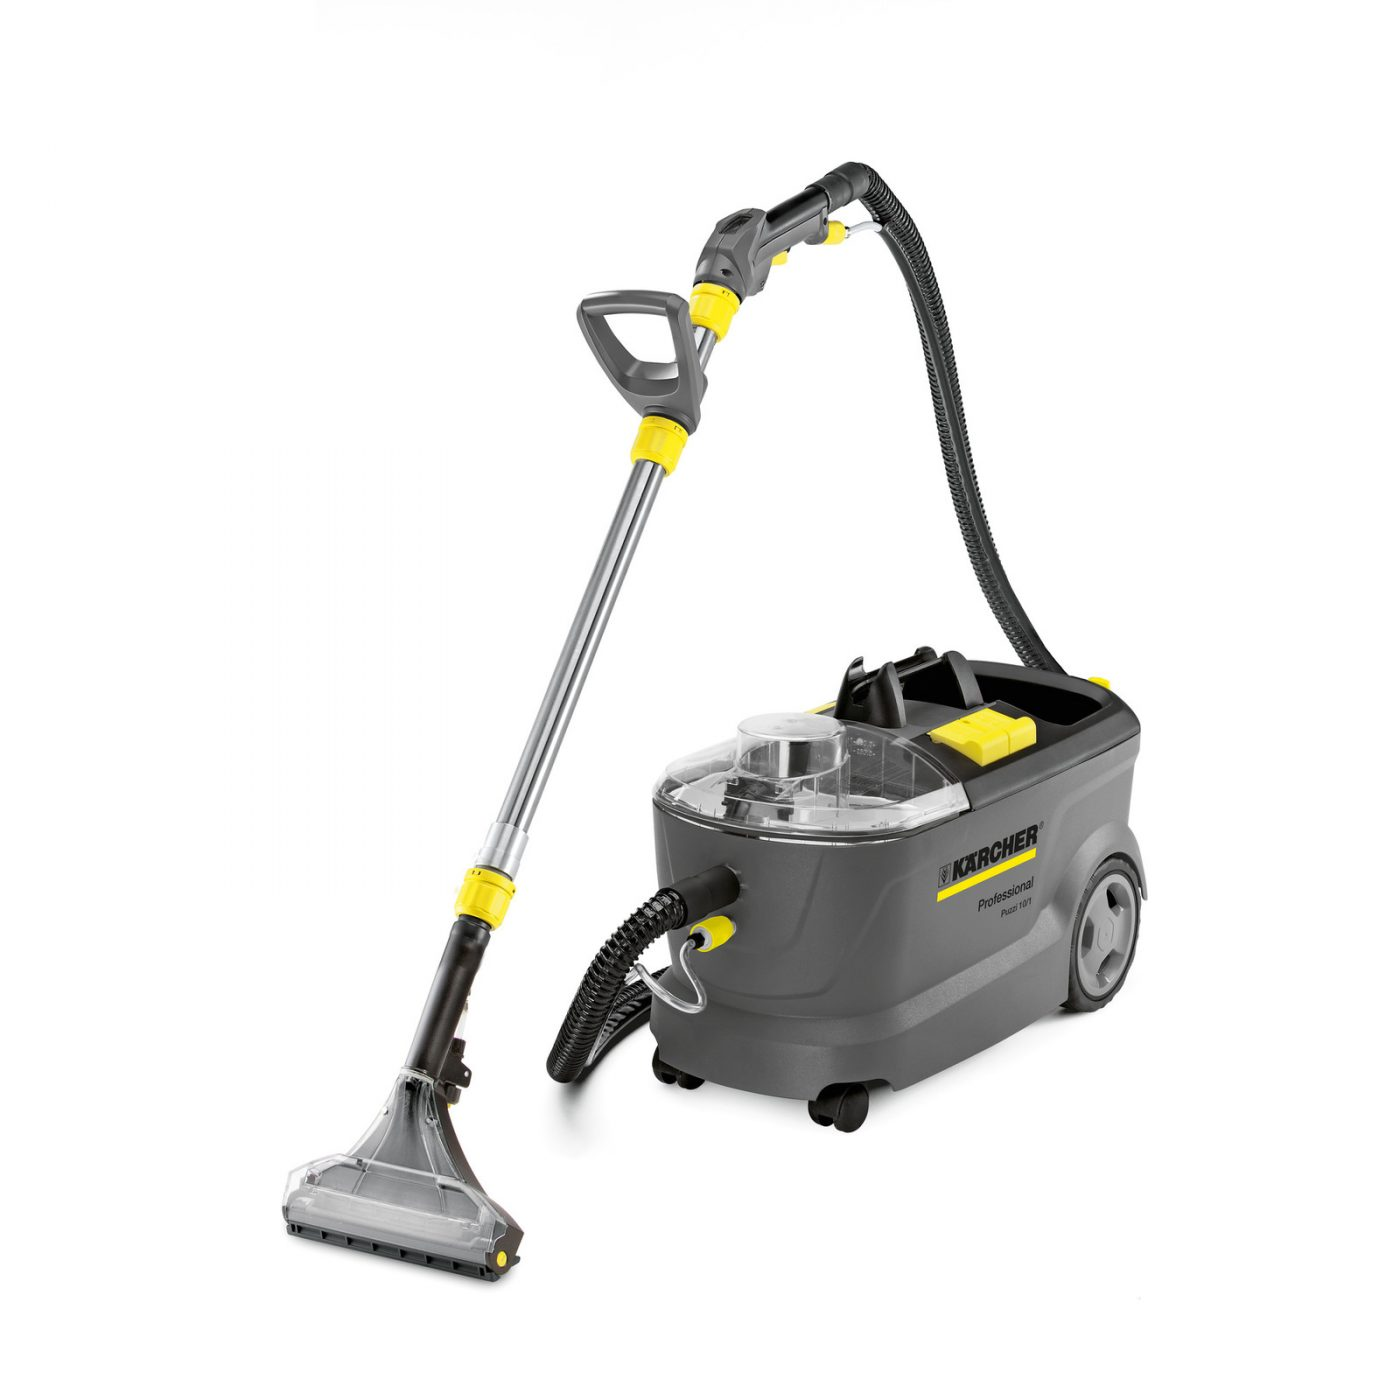 KARCHER 1.100-130.0 - Puzzi 10/1 Spray Extraction Cleaner